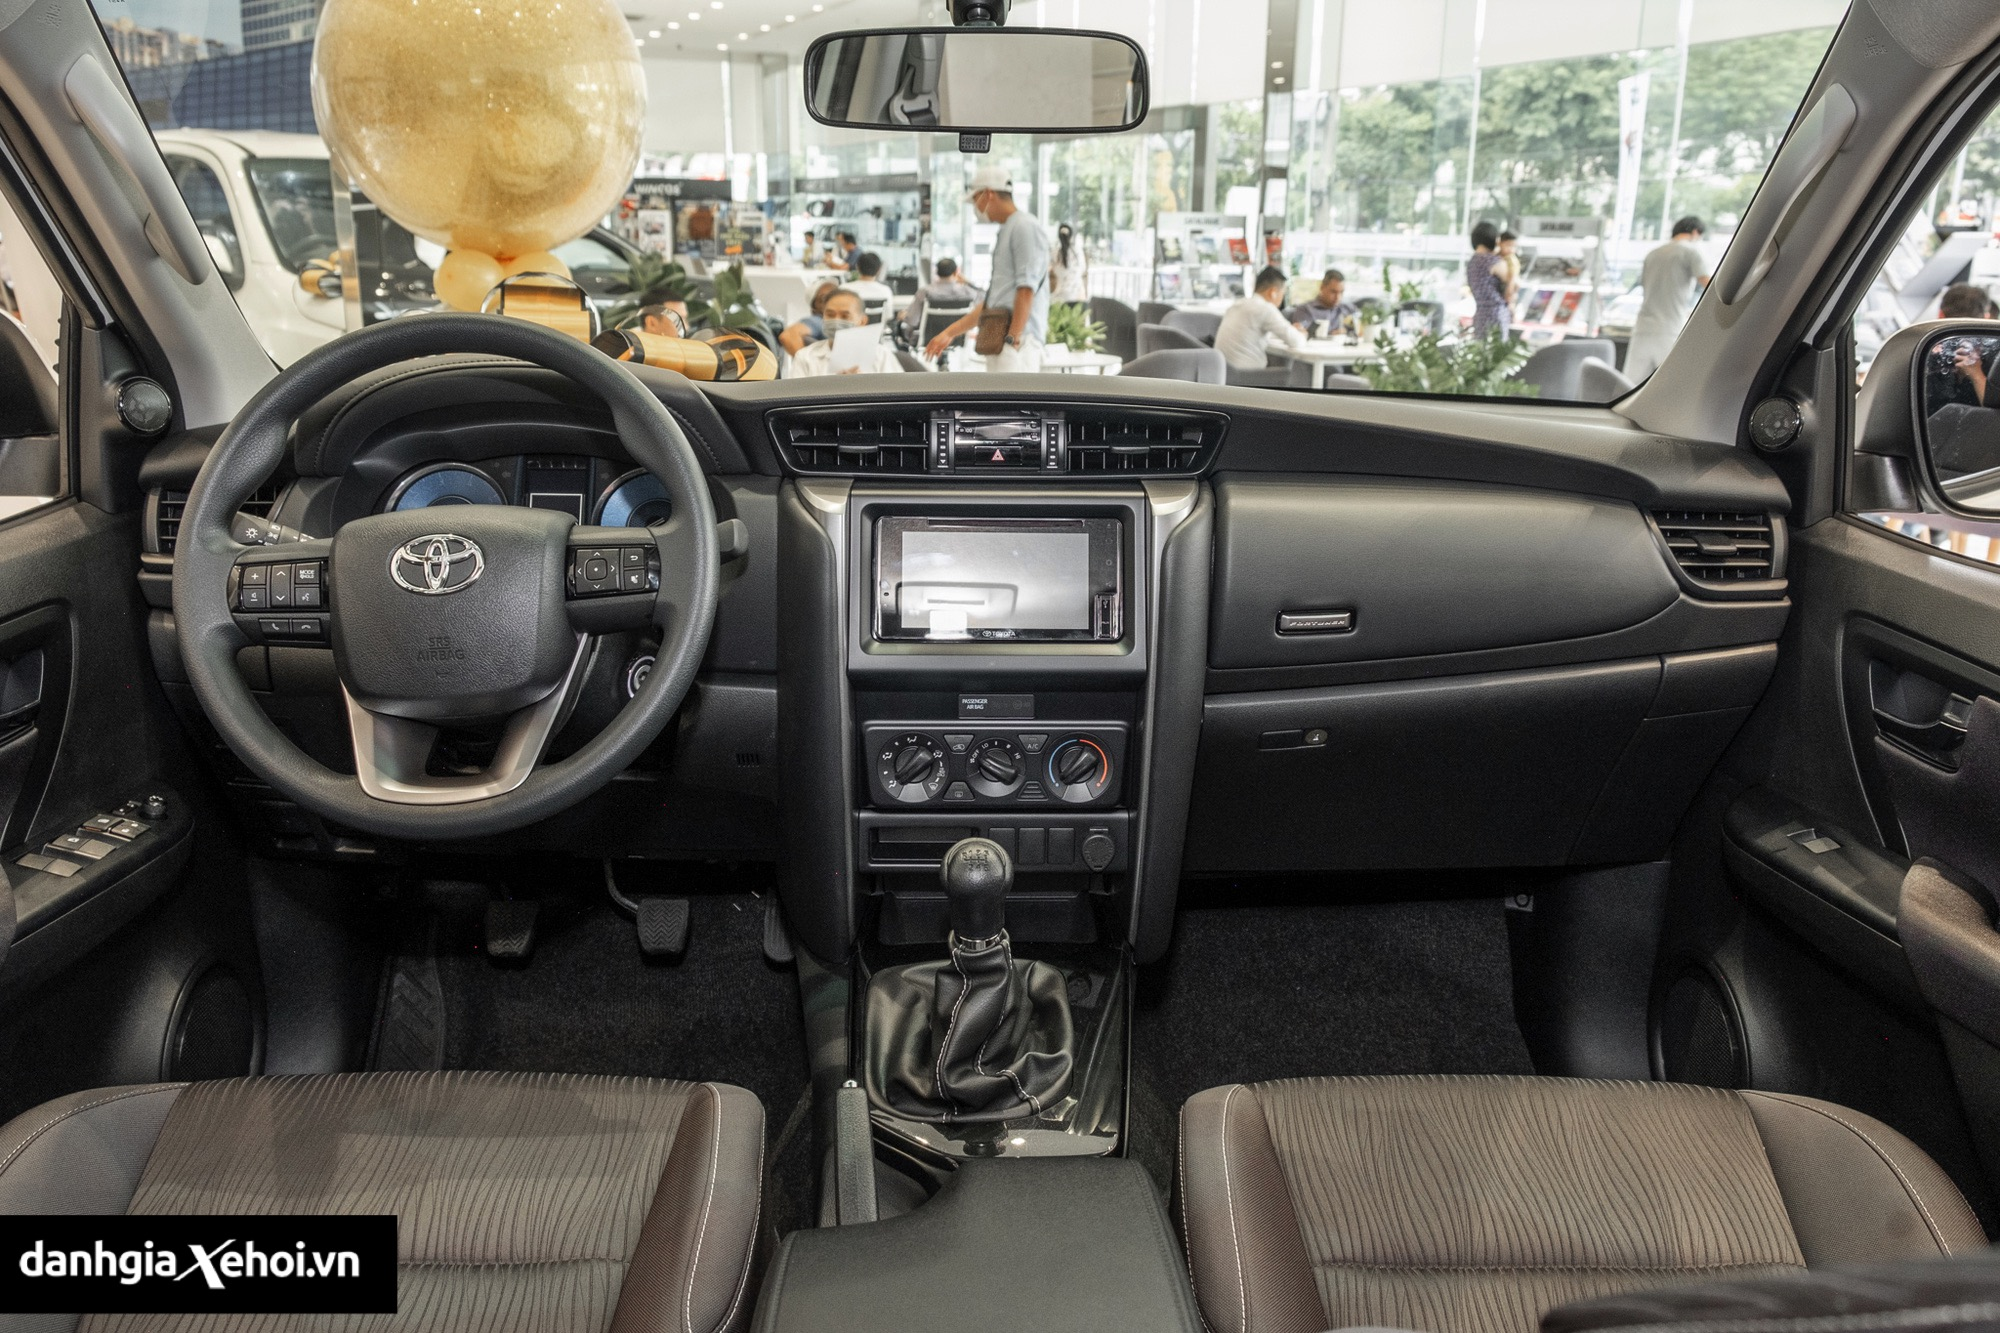 noi-that-xe-toyota-fortuner-may-dau-so-san-2021-danhgiaxehoi-vn